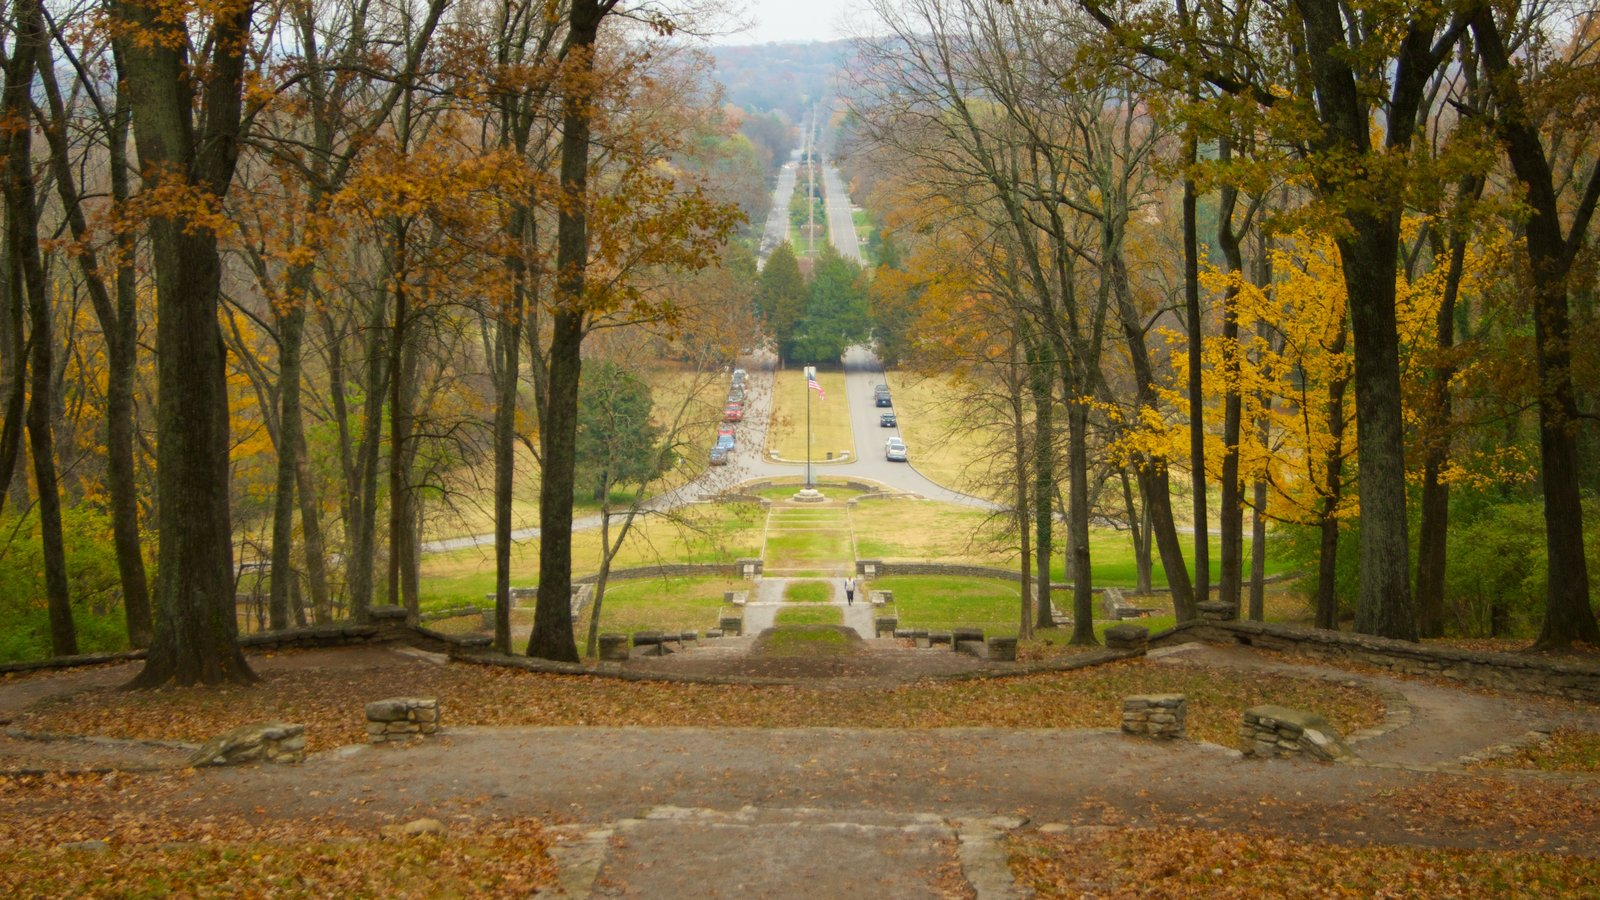 Edwin and Percy Warner Parks which includes landscape views, a garden and autumn leaves